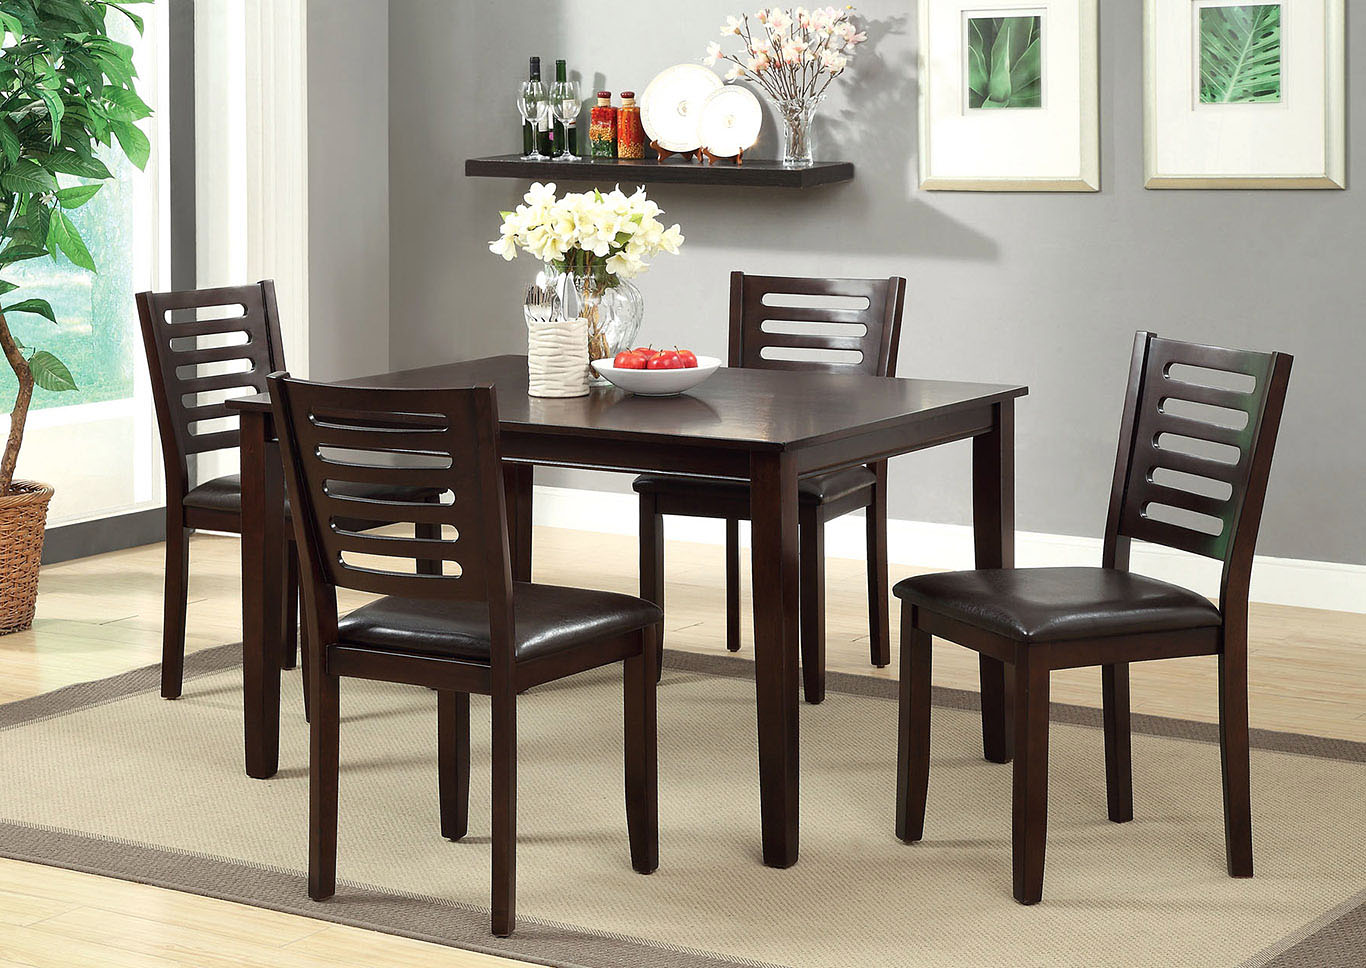 Amador I Espresso 5 Pc Dining Table Set,Furniture of America